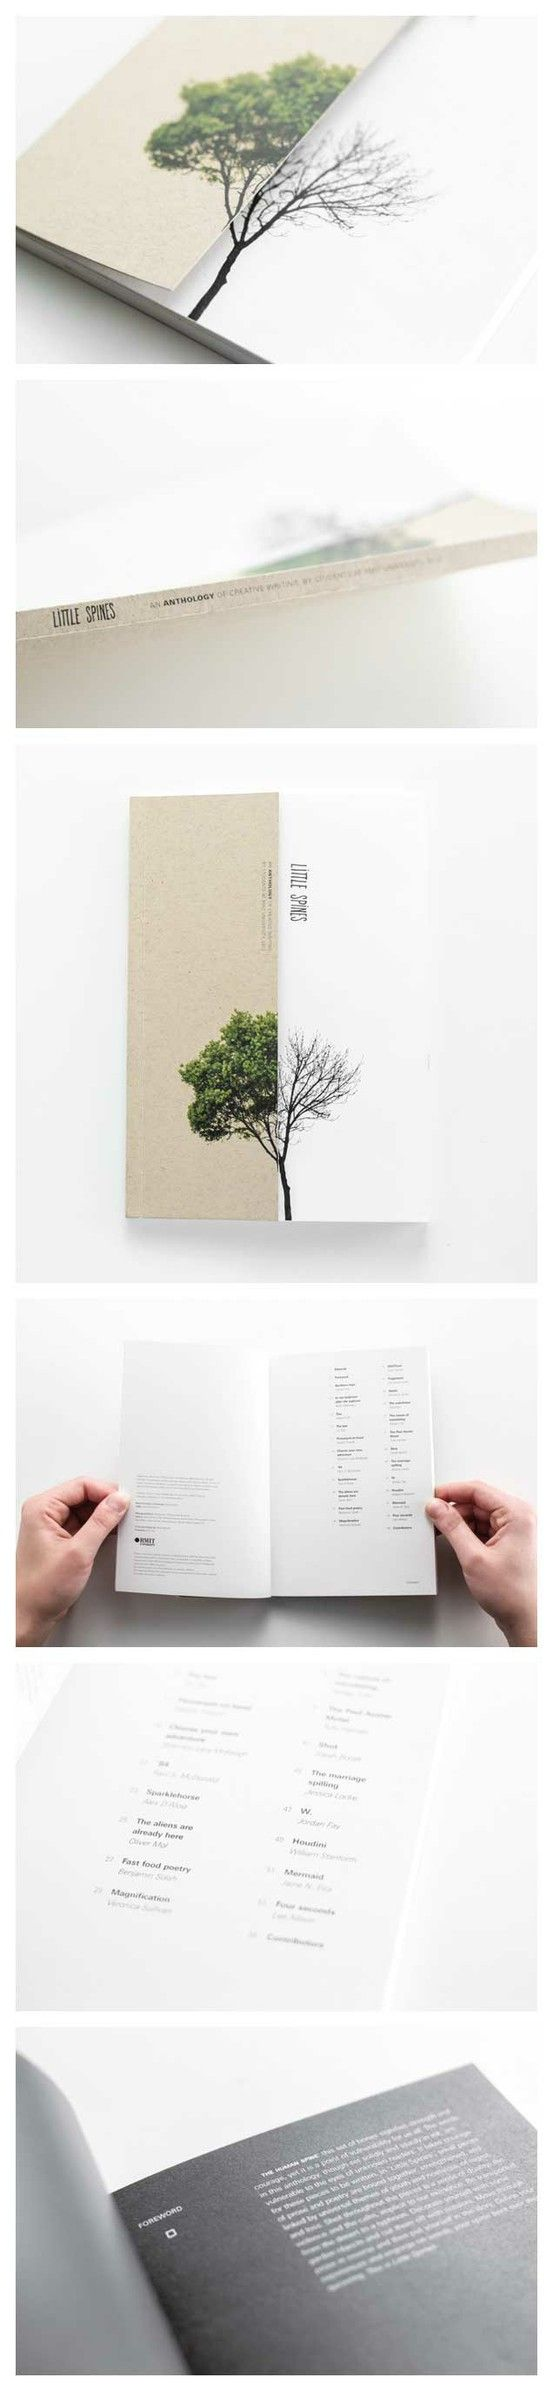 Little Spines by Vibeke Illevold I've followed Vibeke for years and her work is amazing!